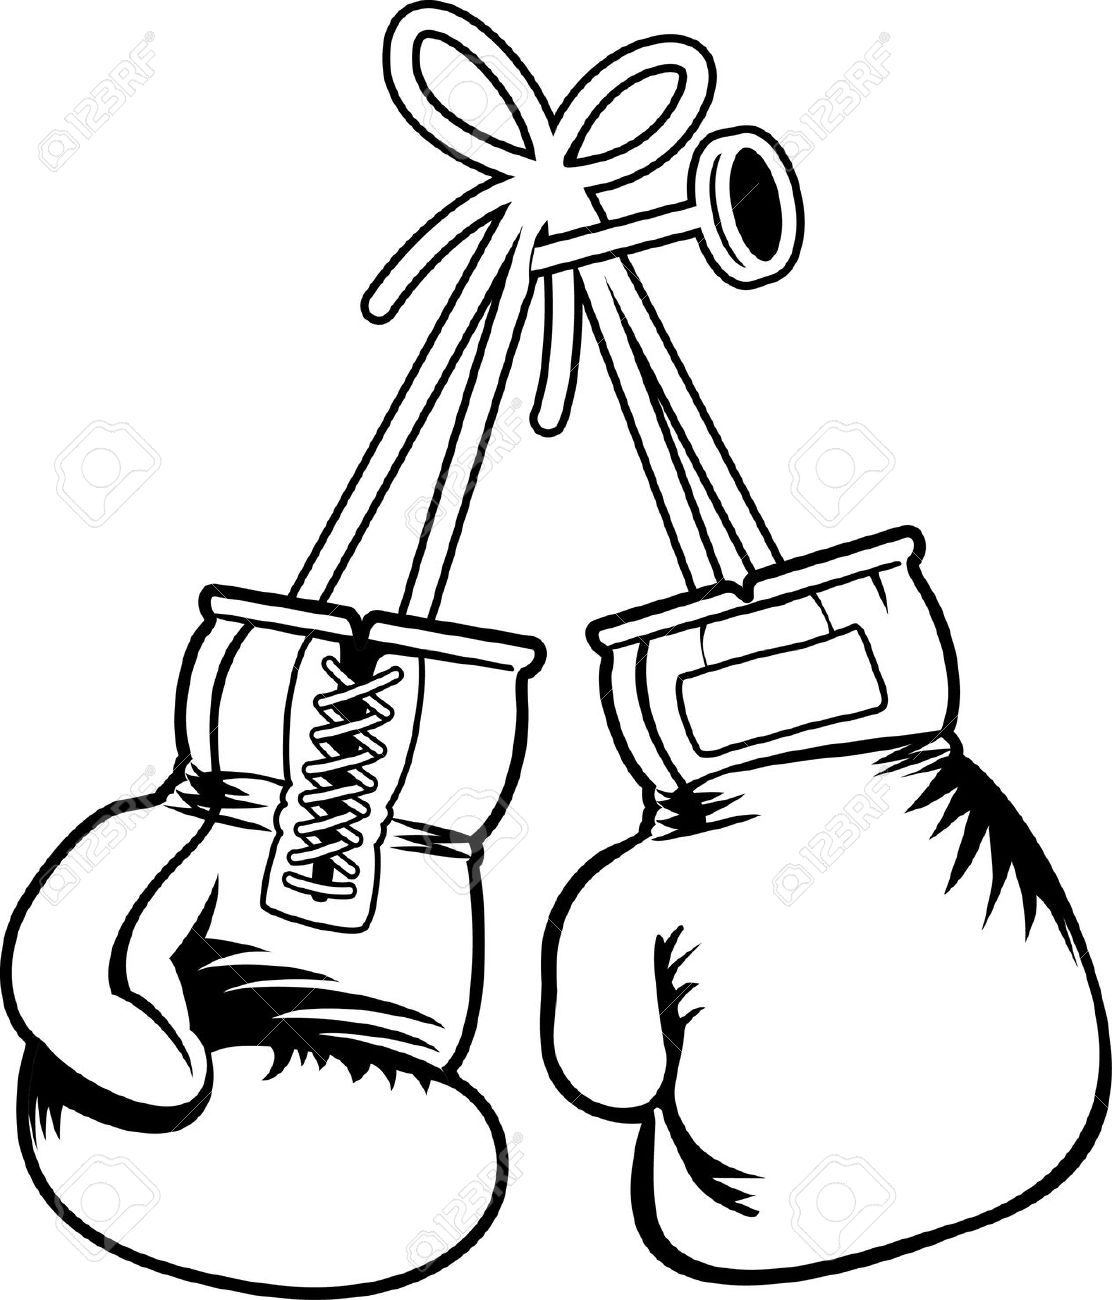 Free clipart boxing gloves.